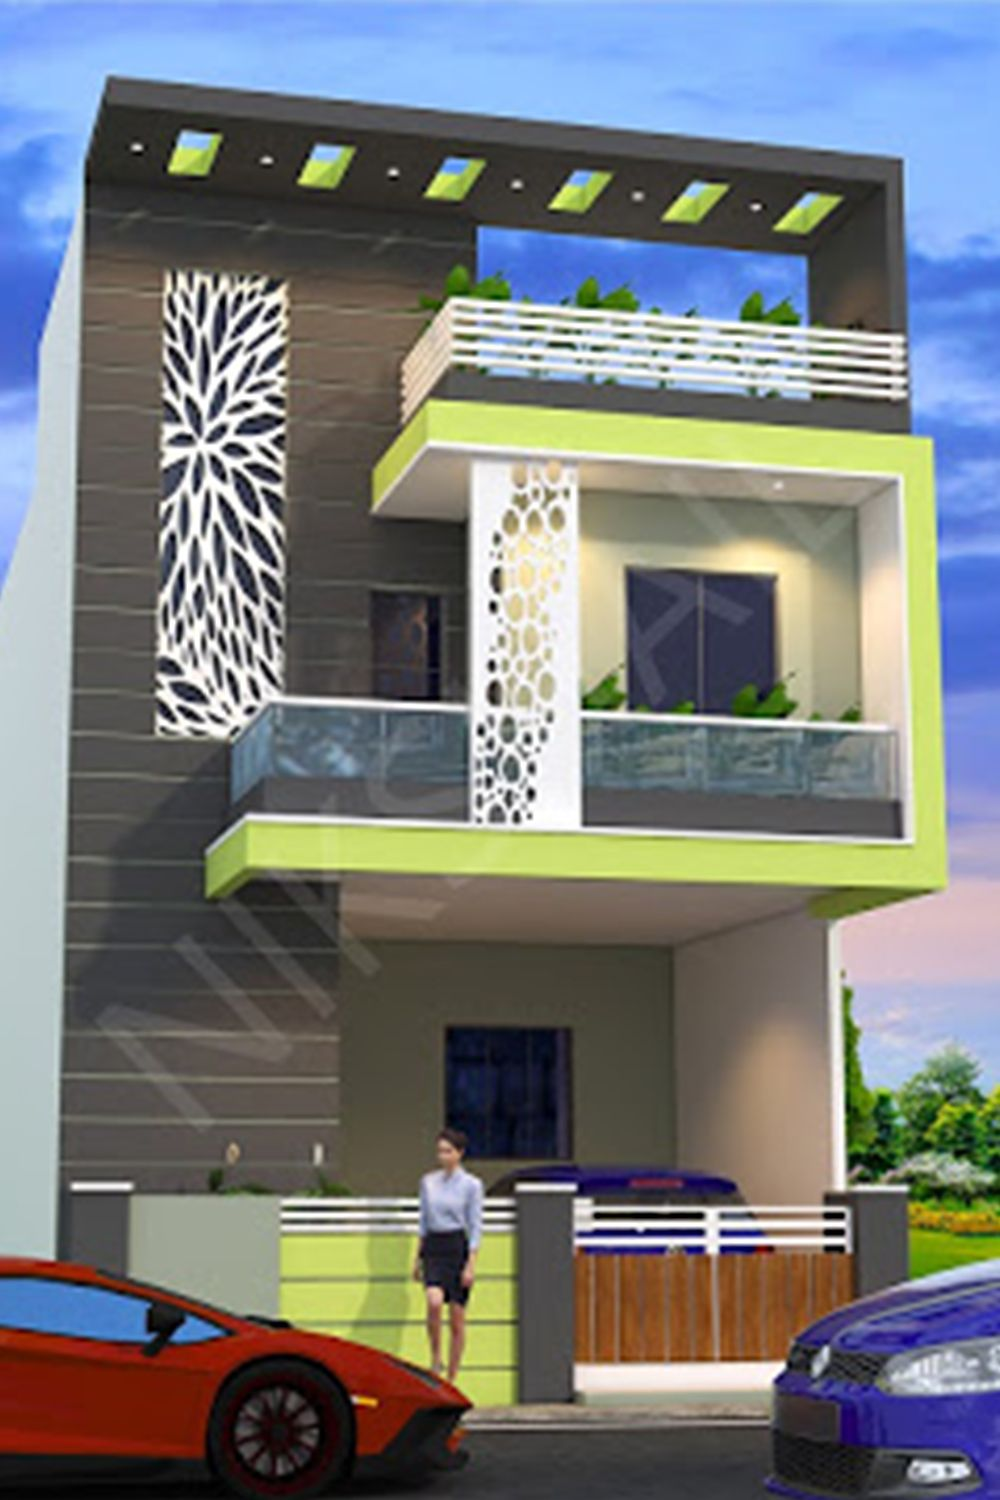 NIKSHAIL HOUSE DESIGN Nikshail House Design. Indian House Design And Plan. Front Elevation